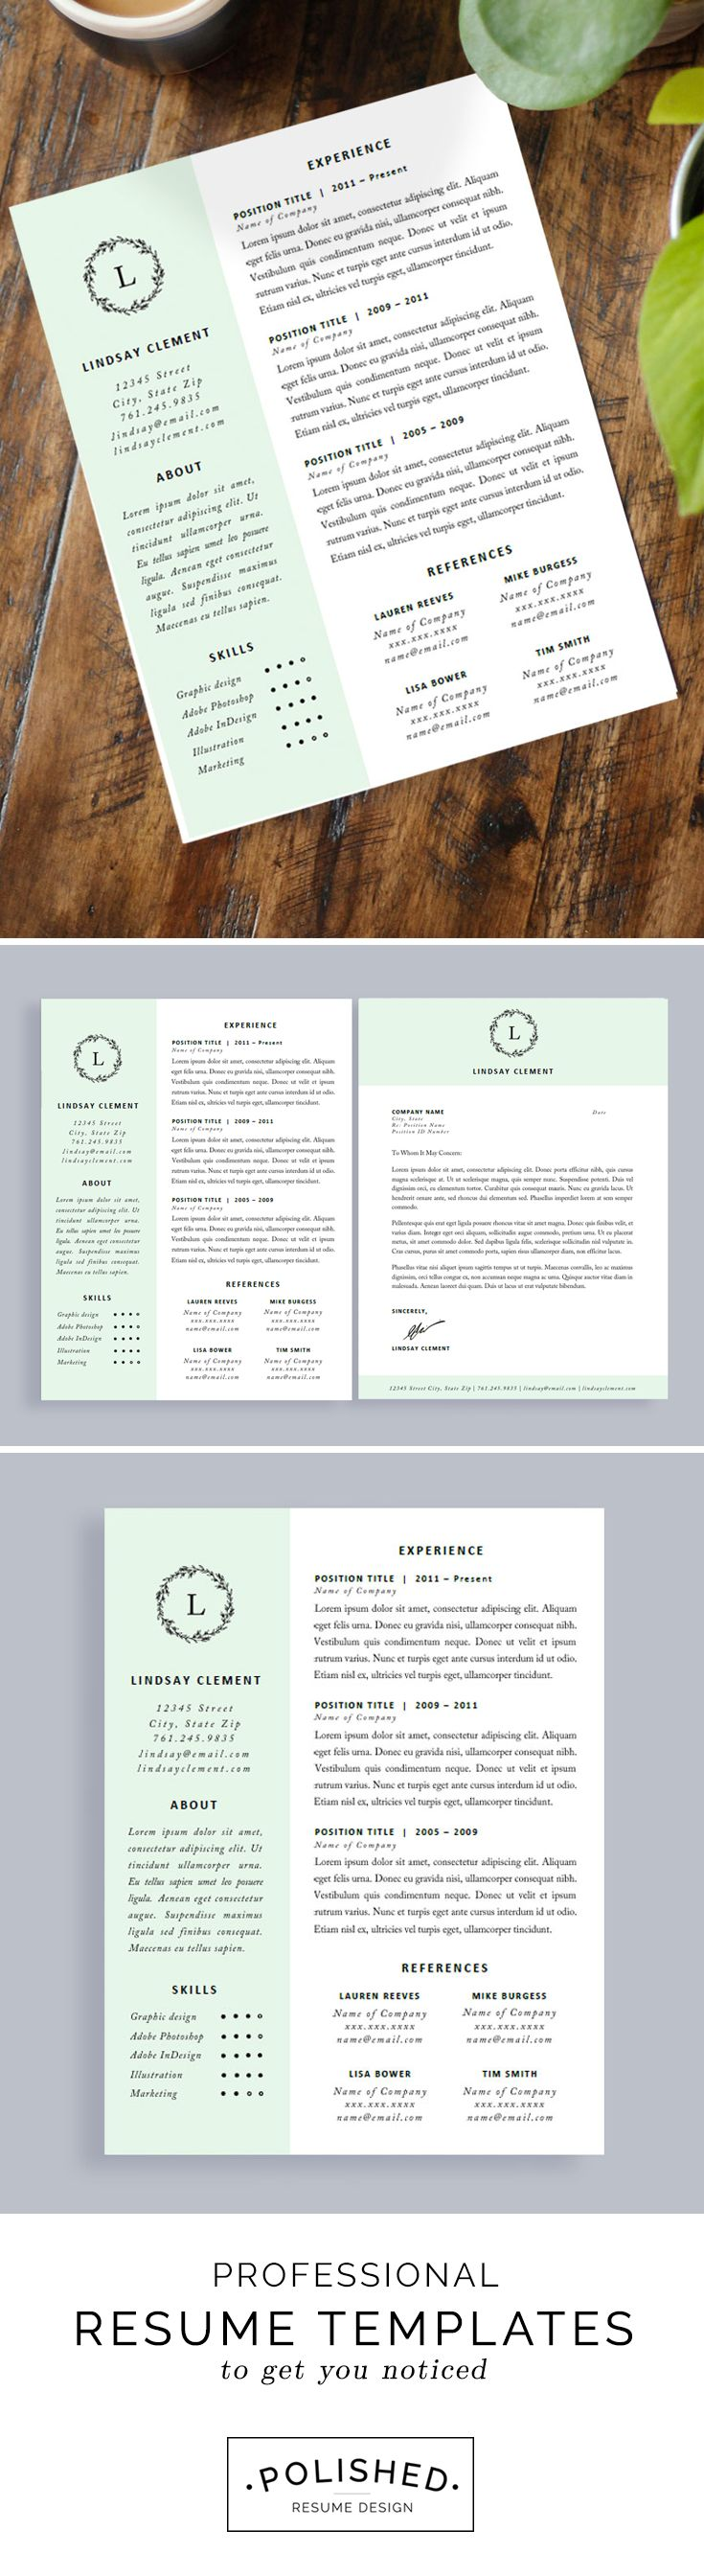 professional resume template cover letter cv professional modern creative resume template ms word for mac pc us letter best cv - Resume Cover Letter Ideas 2